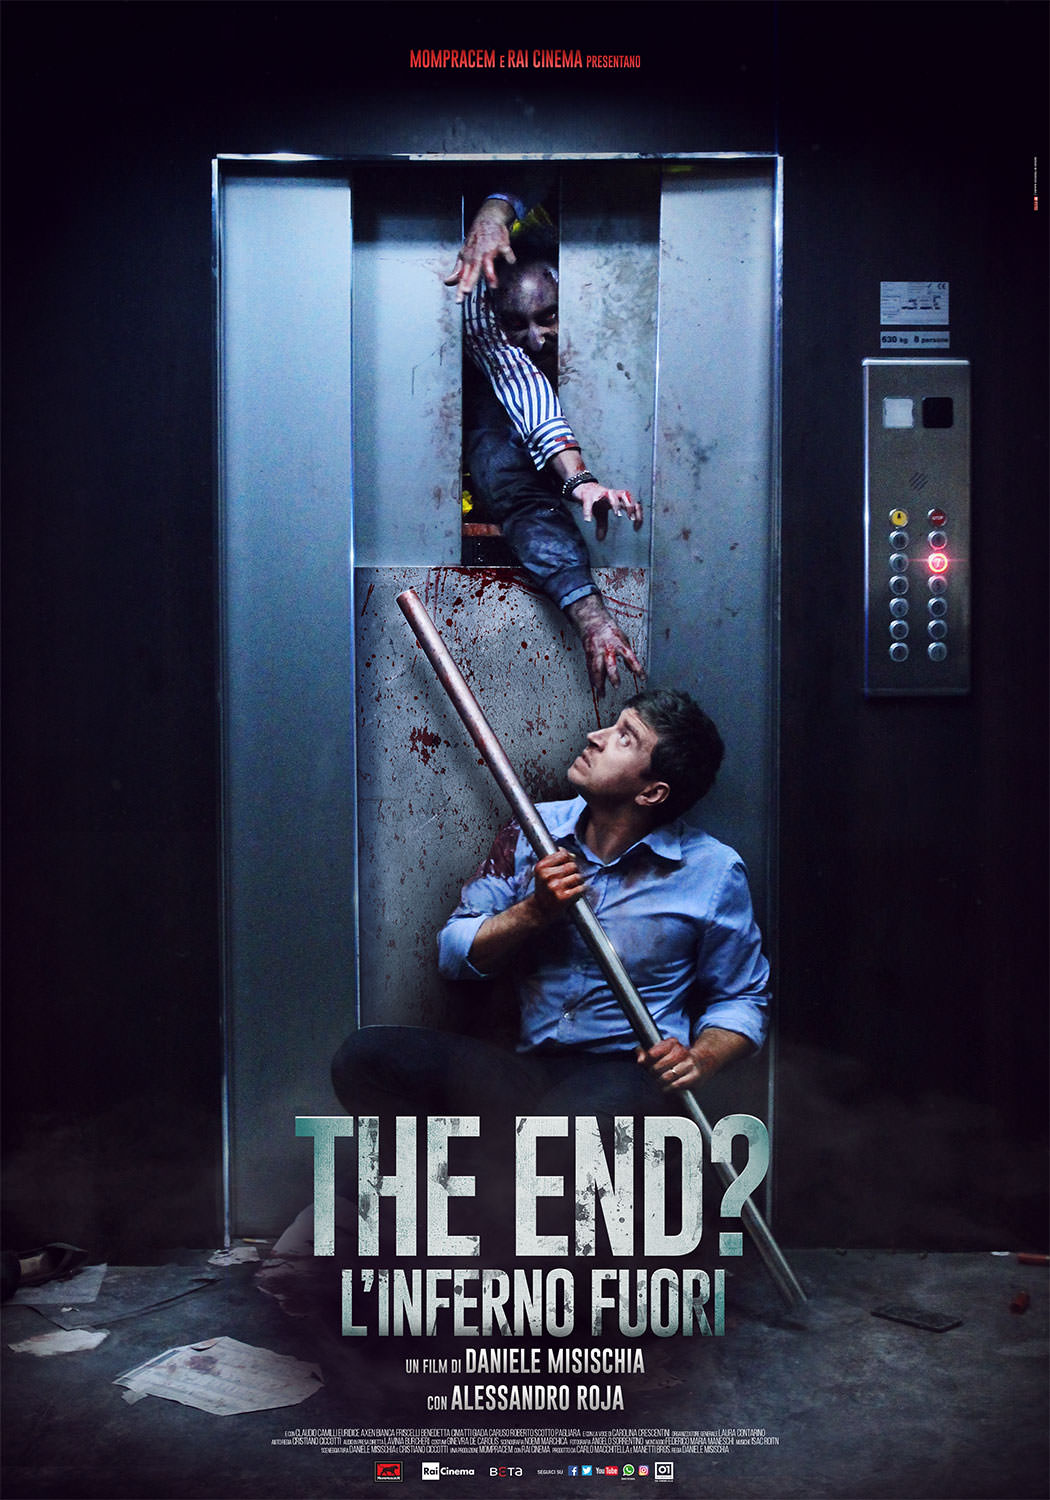 THE END ? - L'INFERNO FUORI - BLU RAY